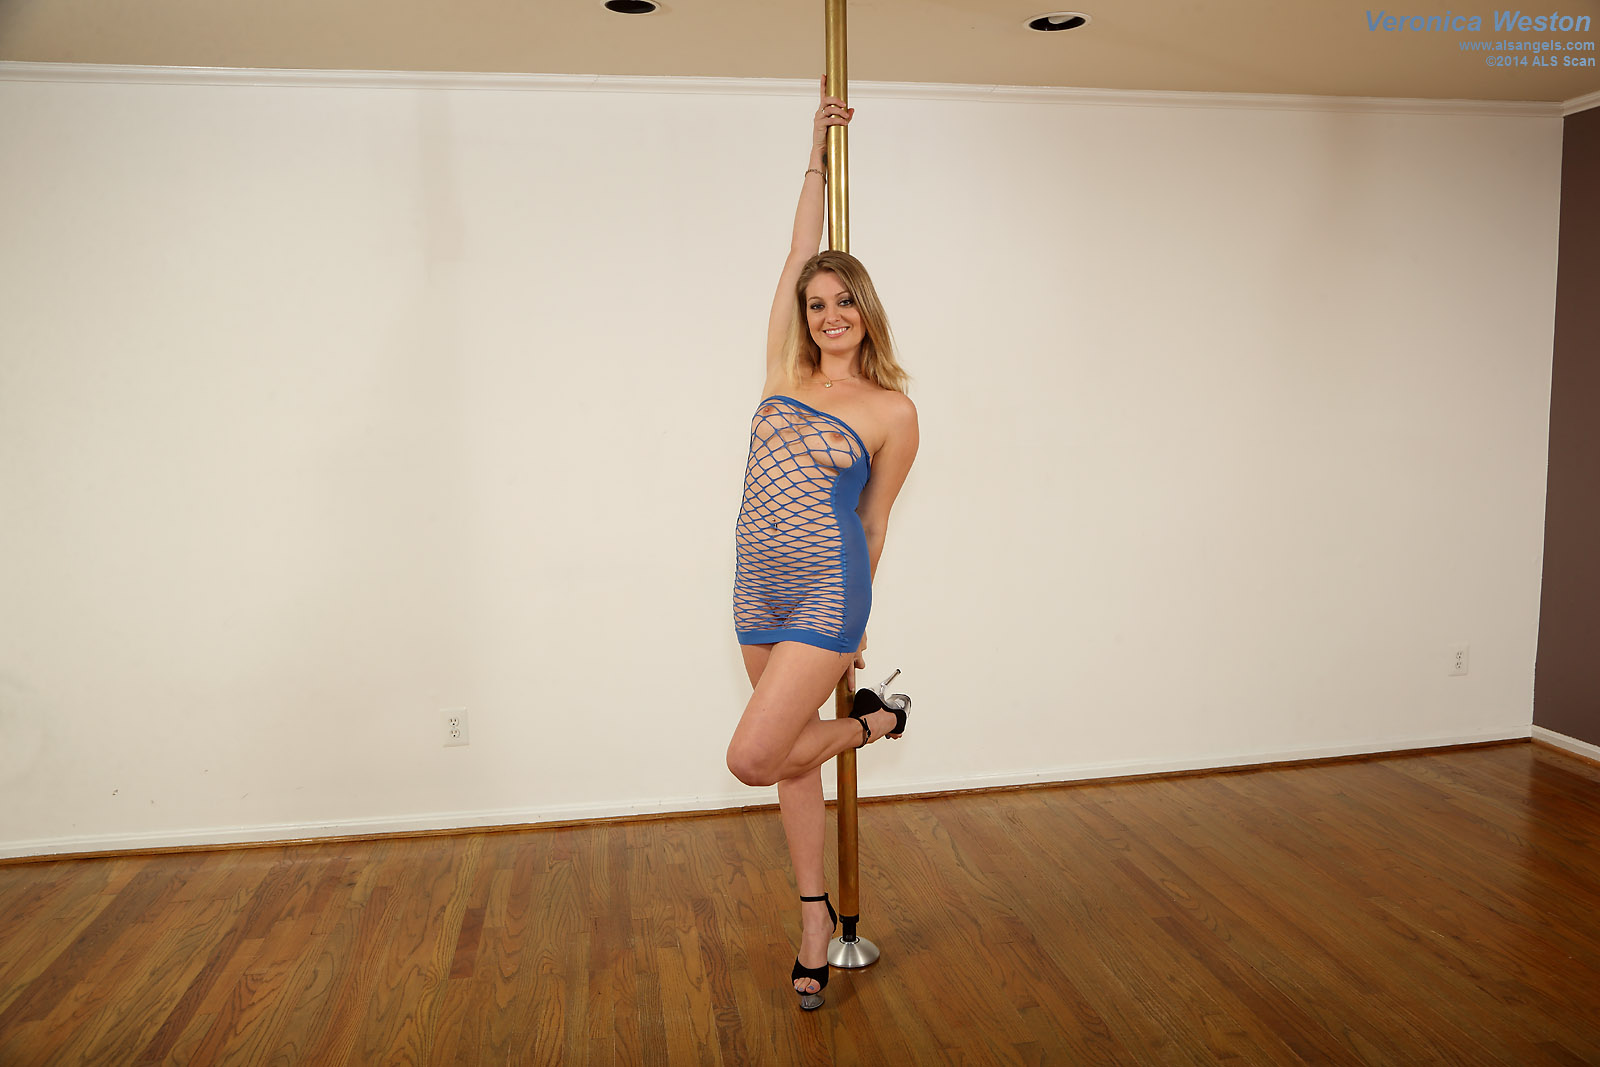 Veronica Weston - Babe Works a Stripper Pole in Mesh Dress and Heels